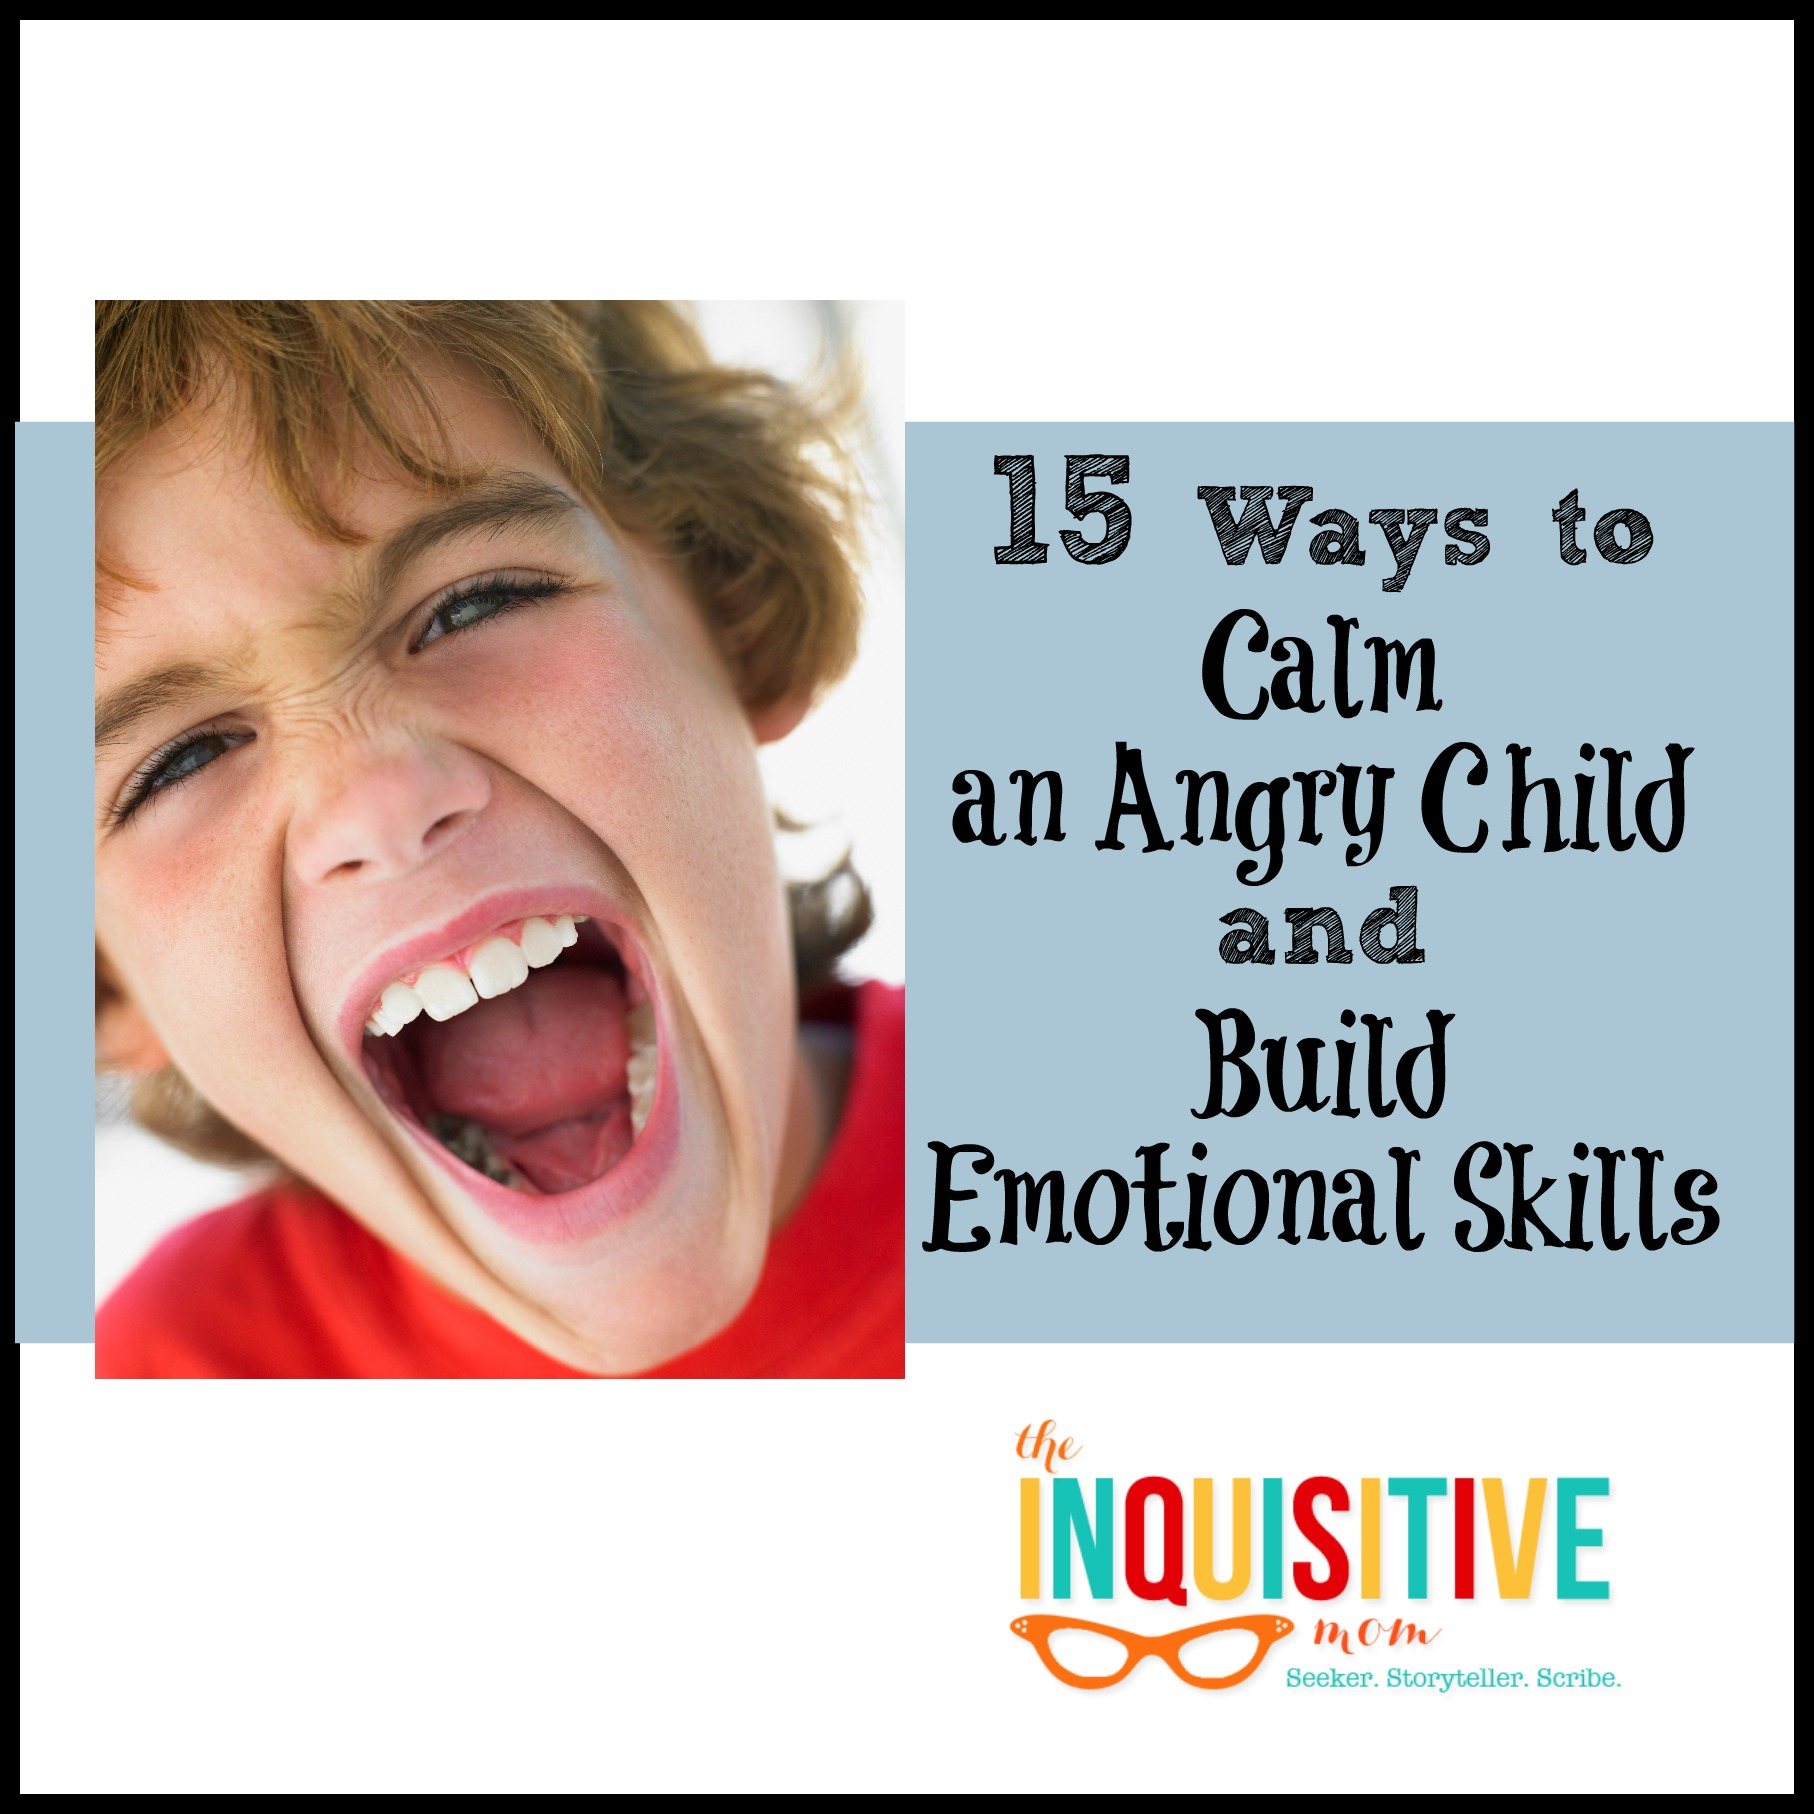 15 Ways to Calm an Angry Child and Build Emotional Skills from The Inquisitive Mom. @InqMomBlog